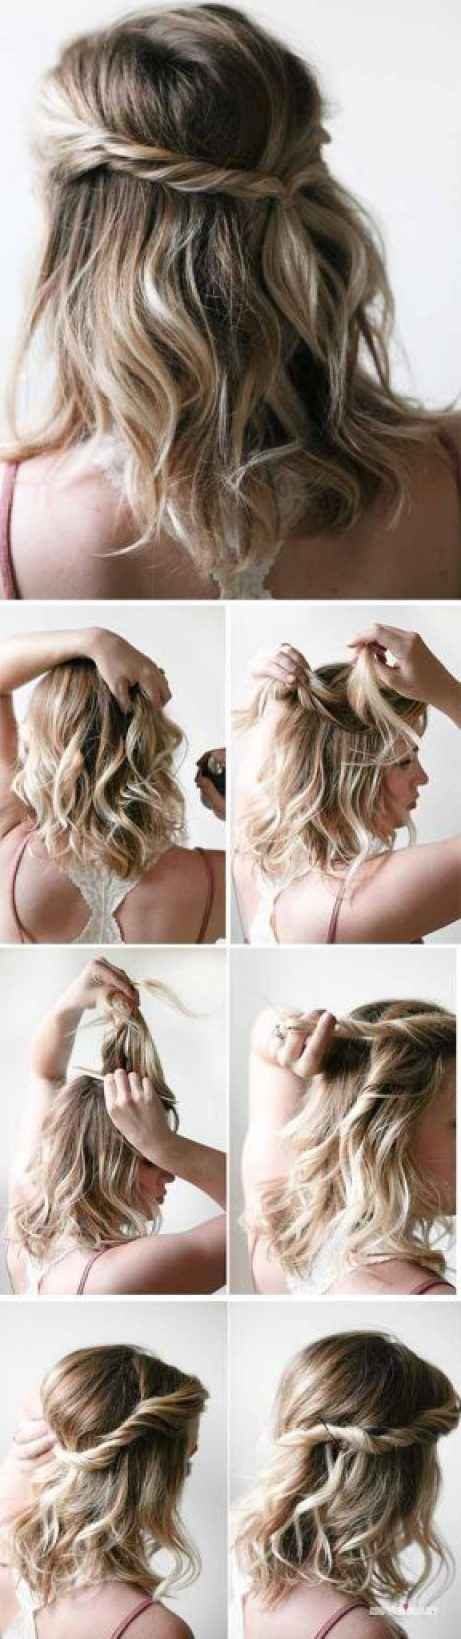 Easy hairstyles for school for short hair